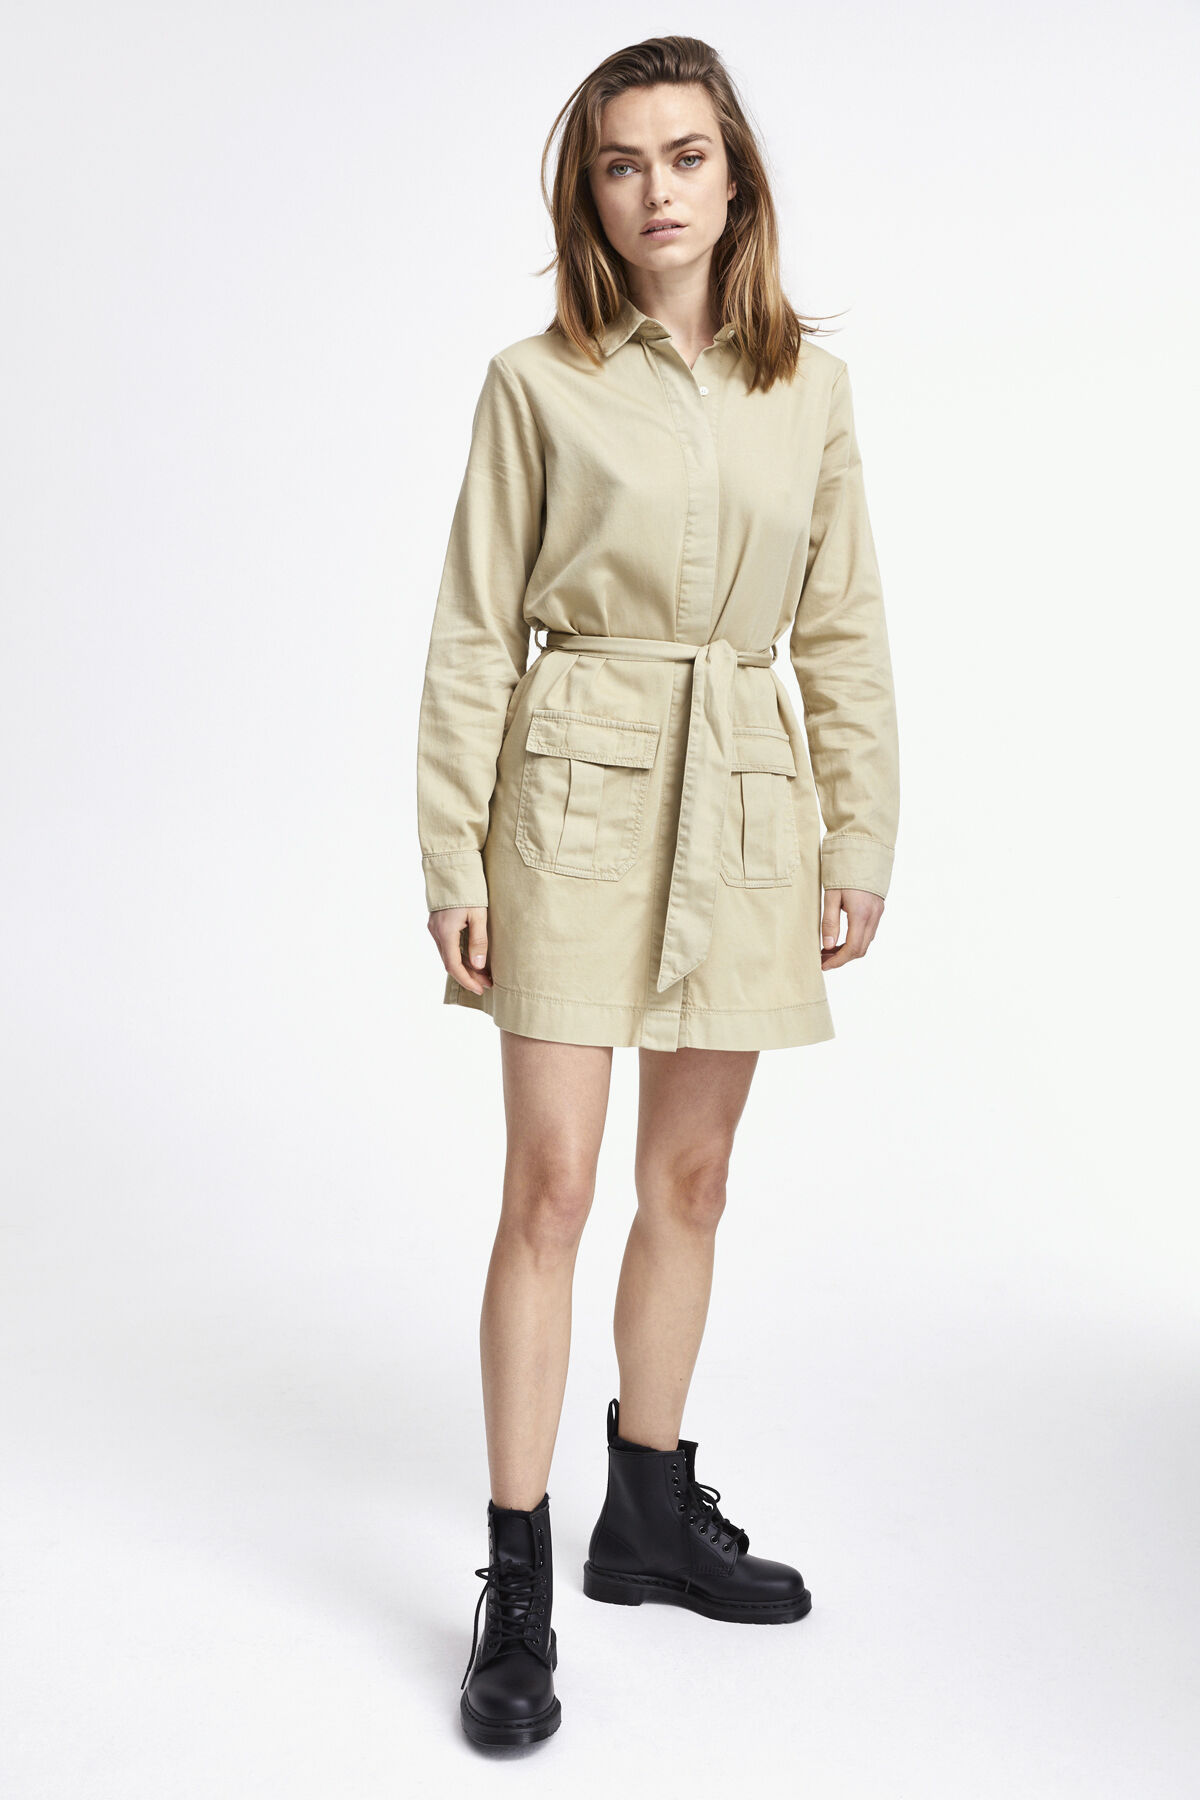 HEREFORD SHIRT DRESS Cotton Twill - Mini